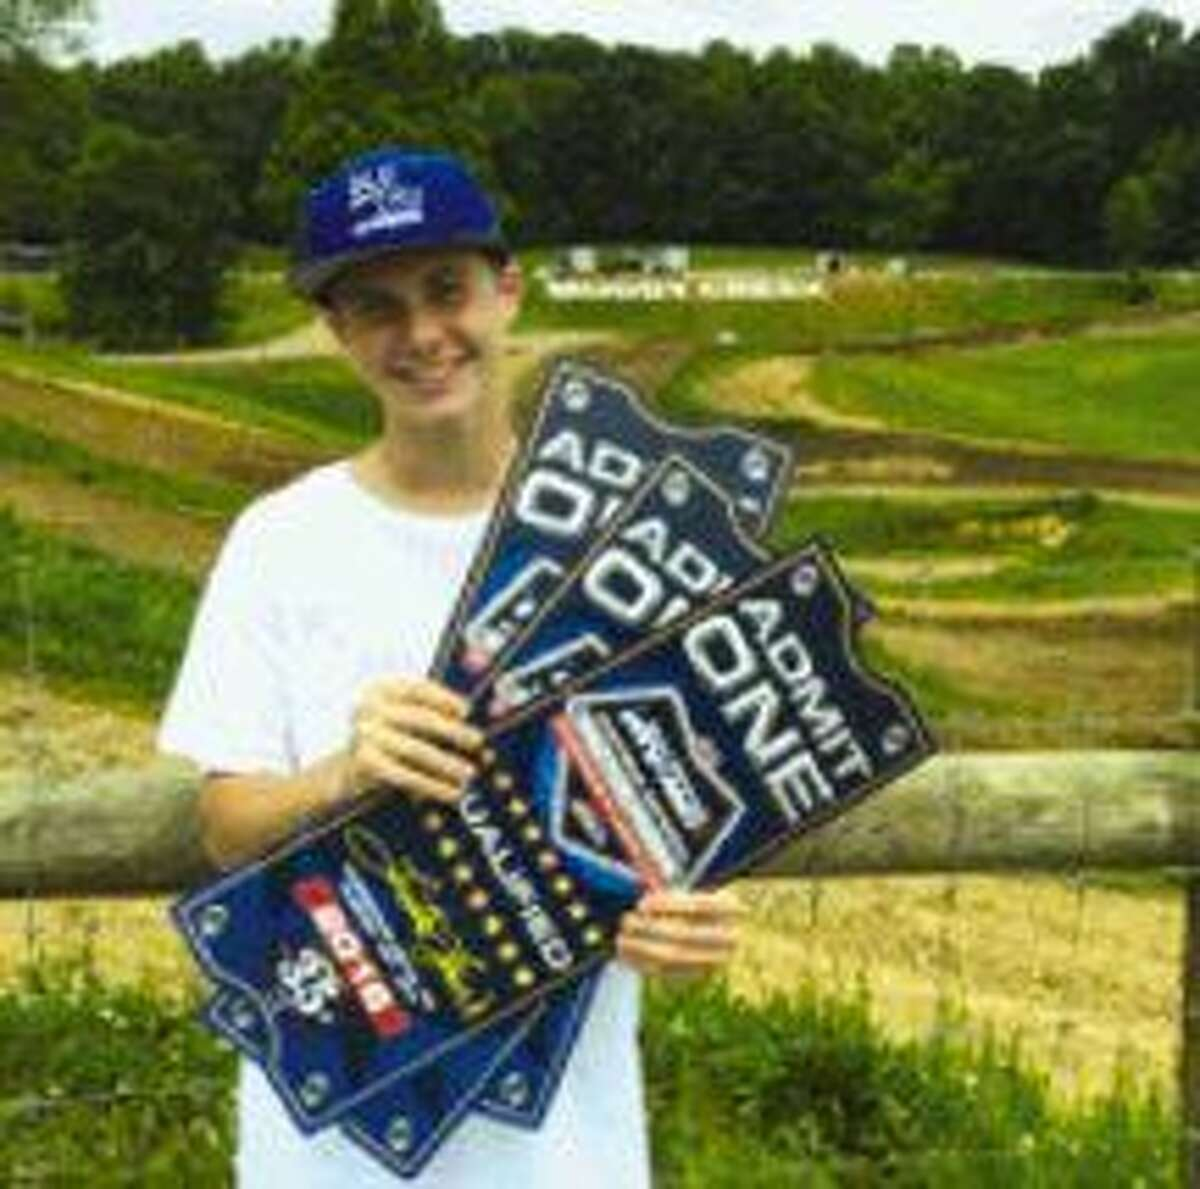 New Caney's Kyle White has qualified for the largest amateur motocross race in the world, the 35th Annual Rocky Mountain ATV/MC AMA Amateur National Motocross Championship.